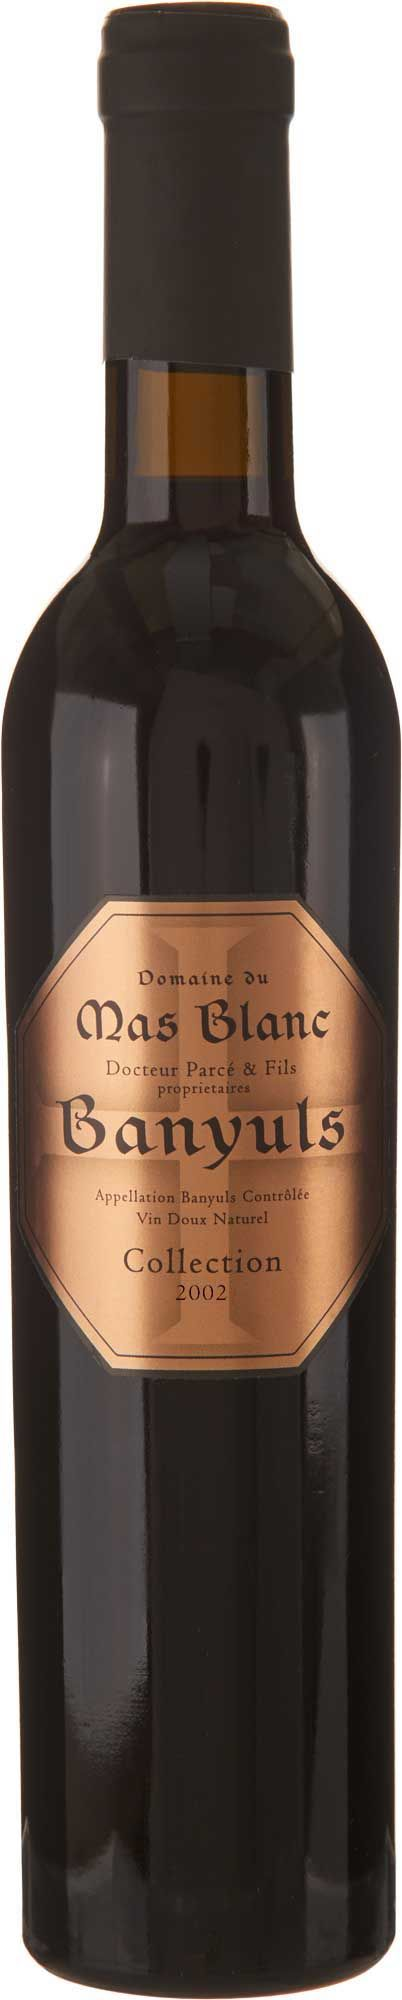 Domaine du Mas Blanc Banyuls Collection 2002